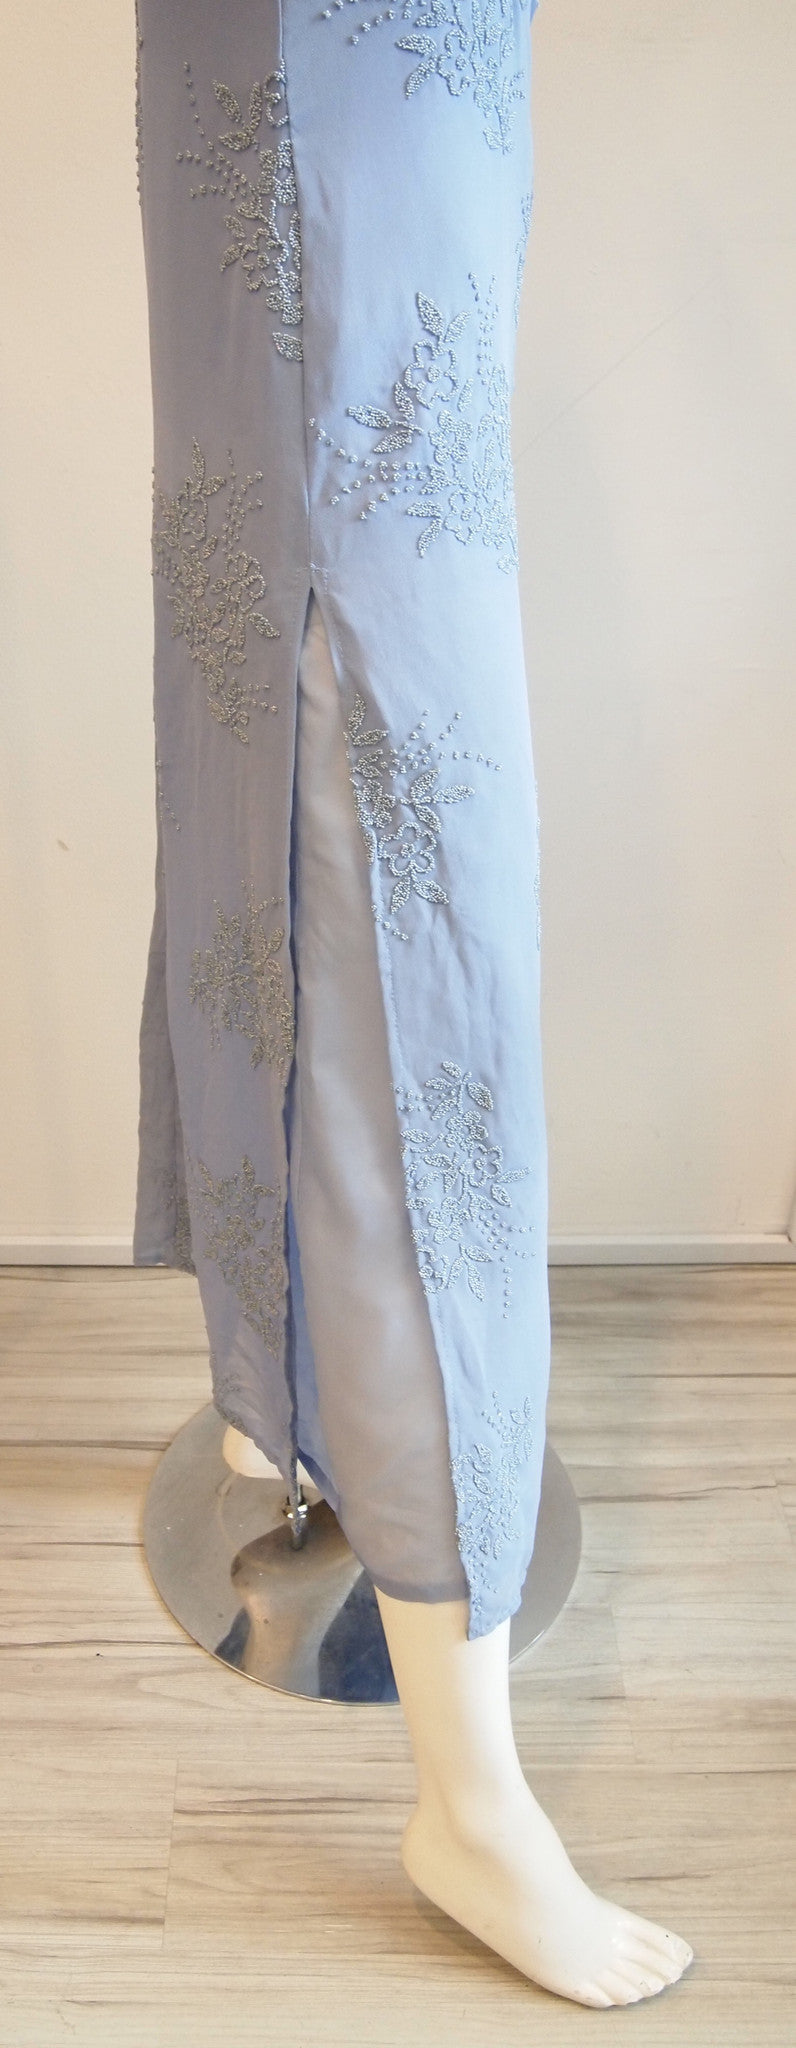 Vintage Nicole Miller Pansy Blue Spag Strap Maxi Dress with Intricate Flower Beading